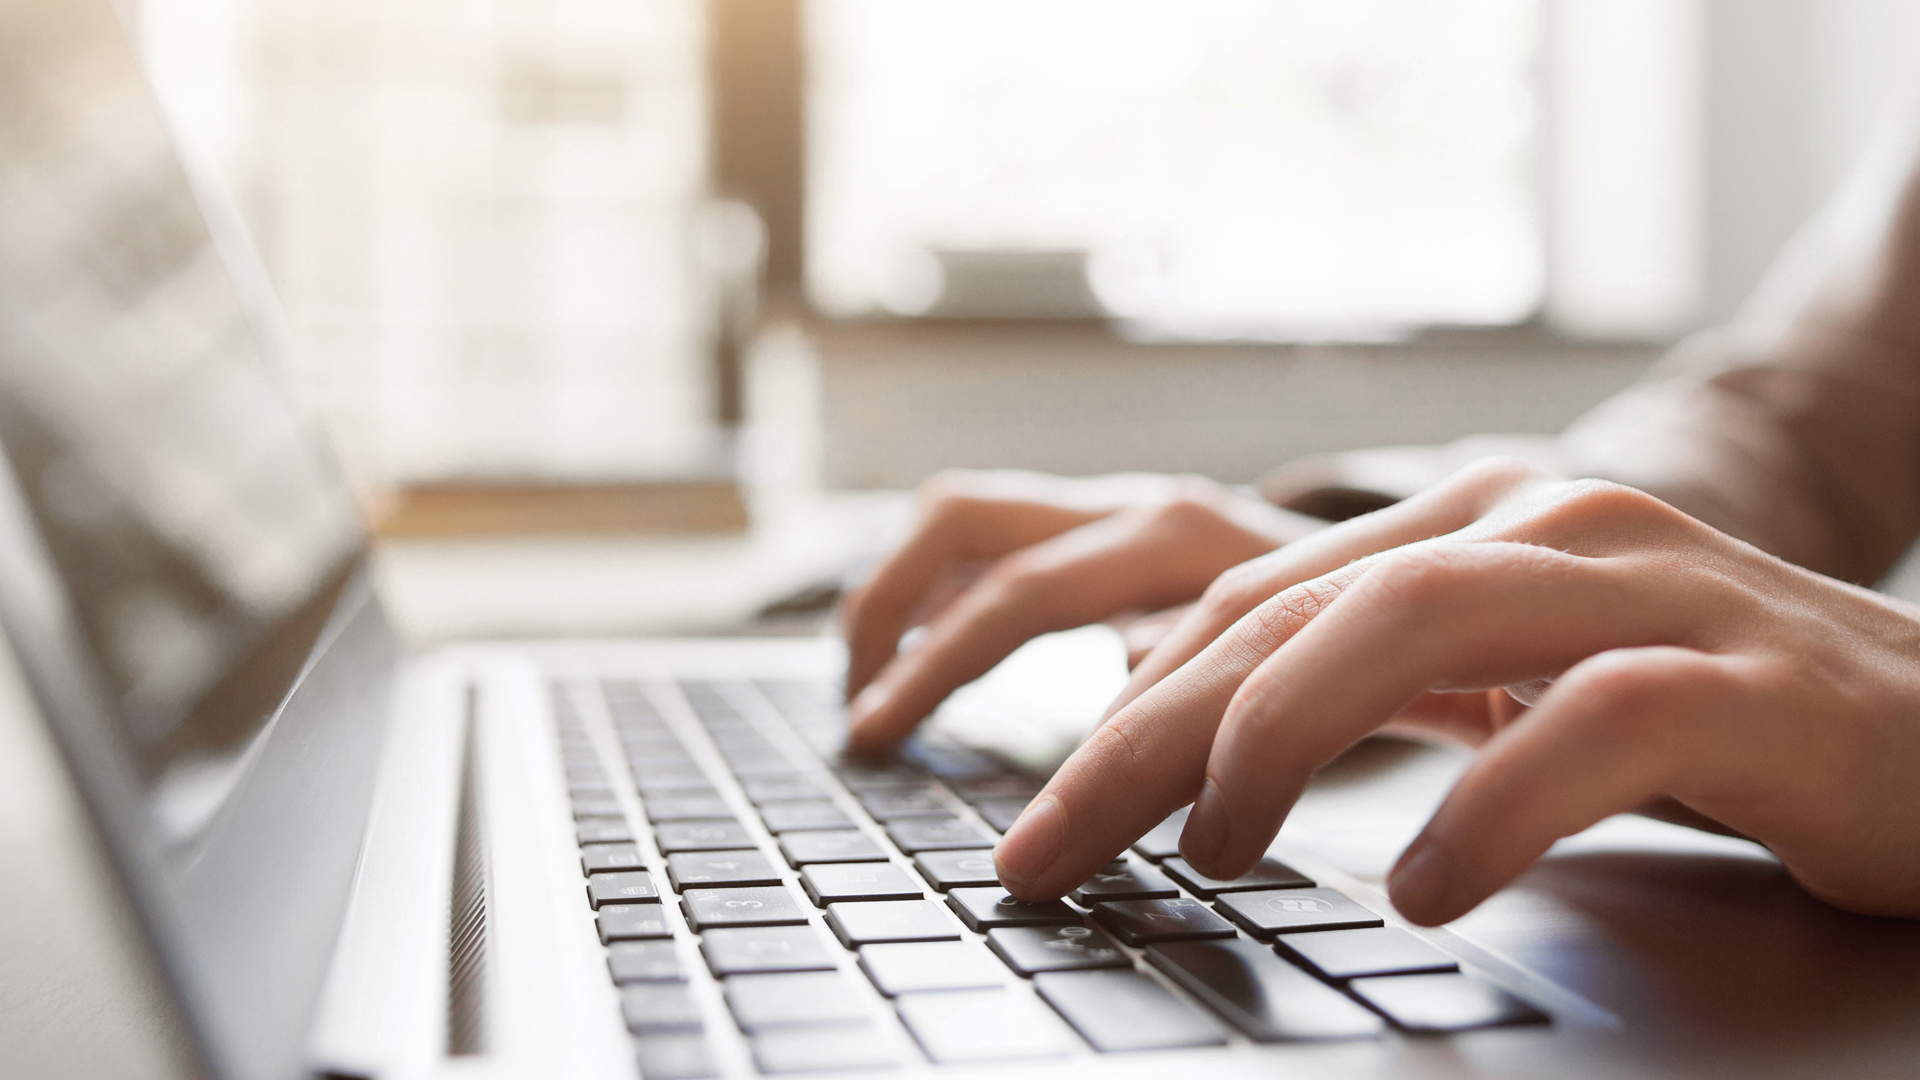 A file image of someone using a computer. (Credit: iStock / Getty Images Plus)